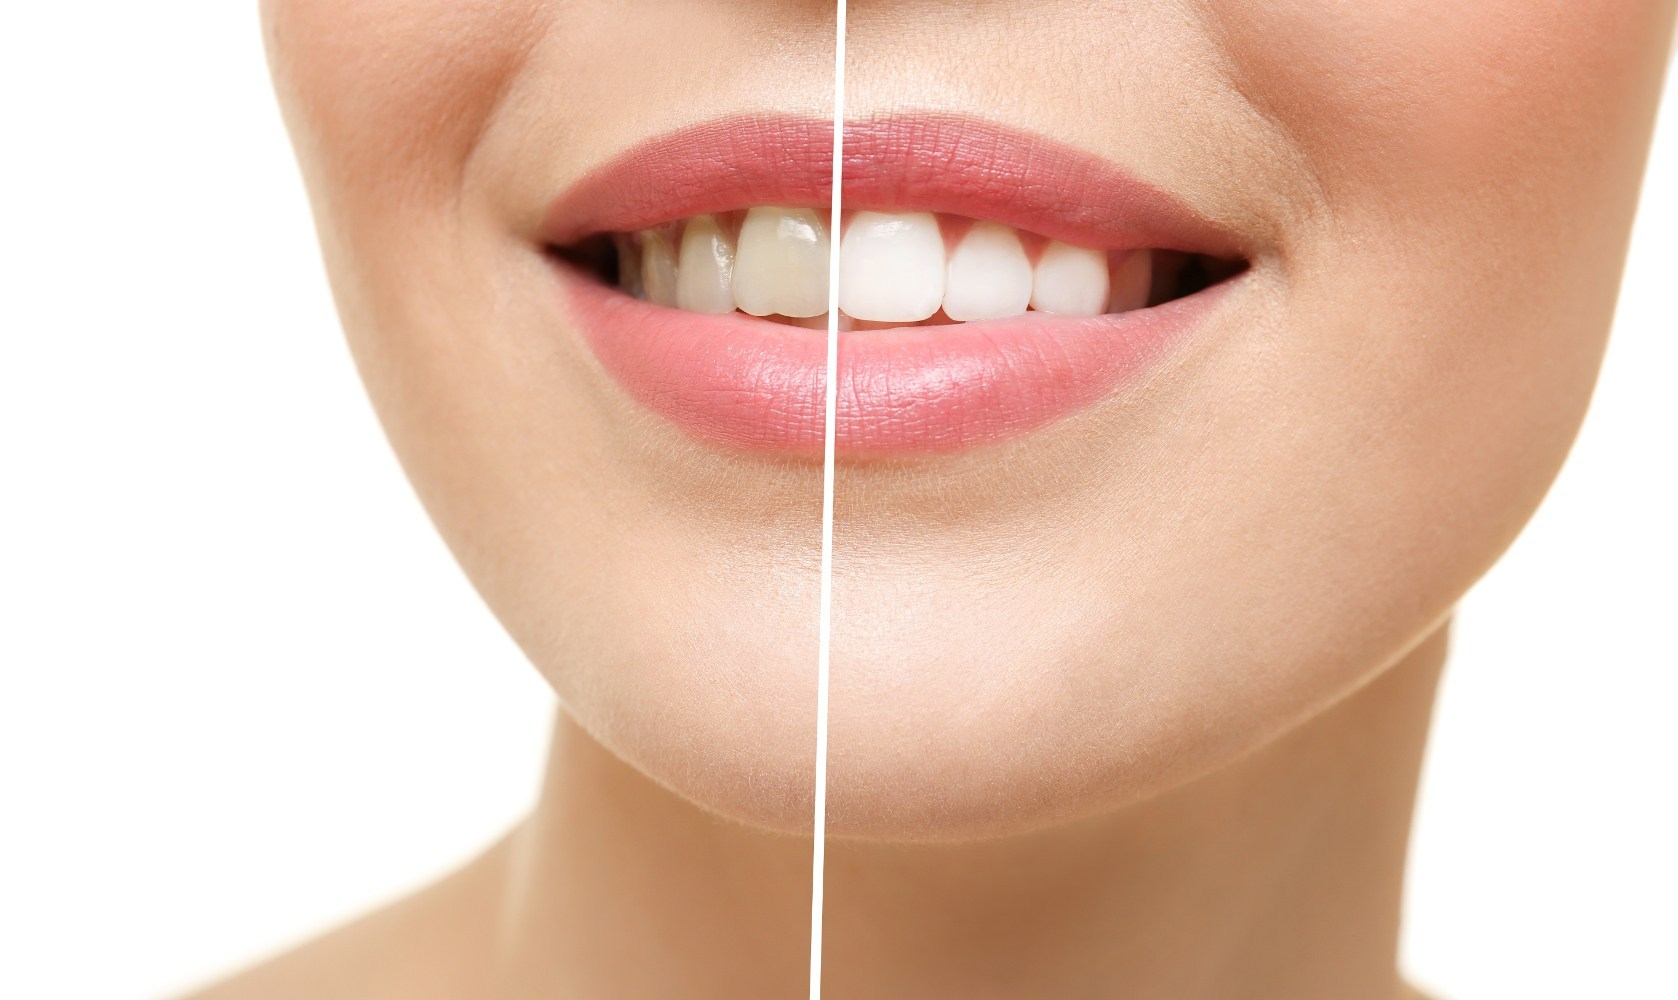 Teeth Whitening: How Does It Work?